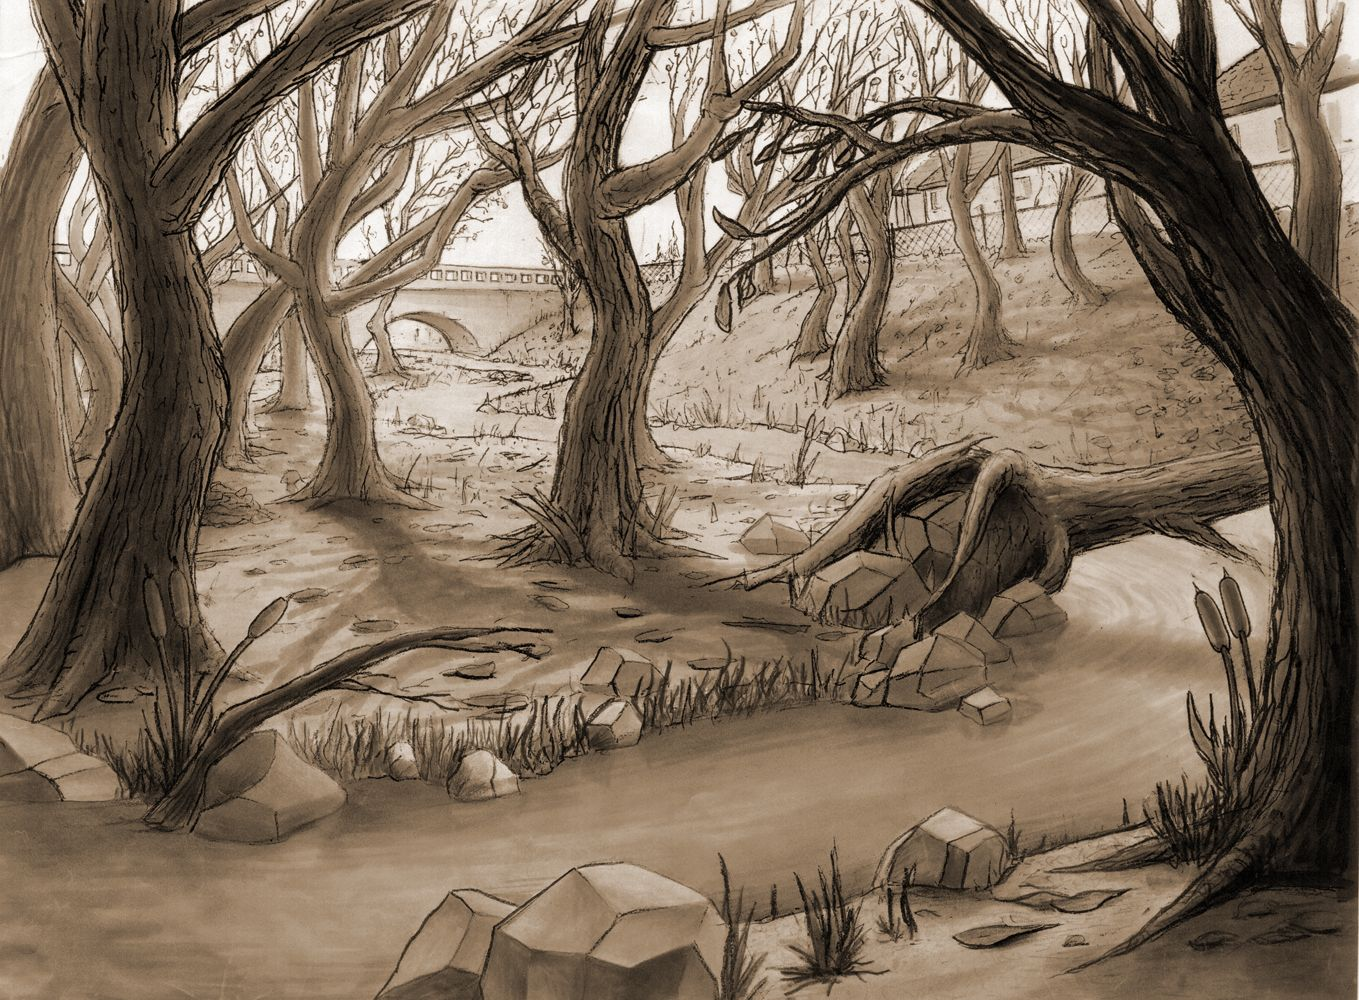 drawing backgrounds - Google Search | My inspiration in 2019 | Drawings, Animation background, Art